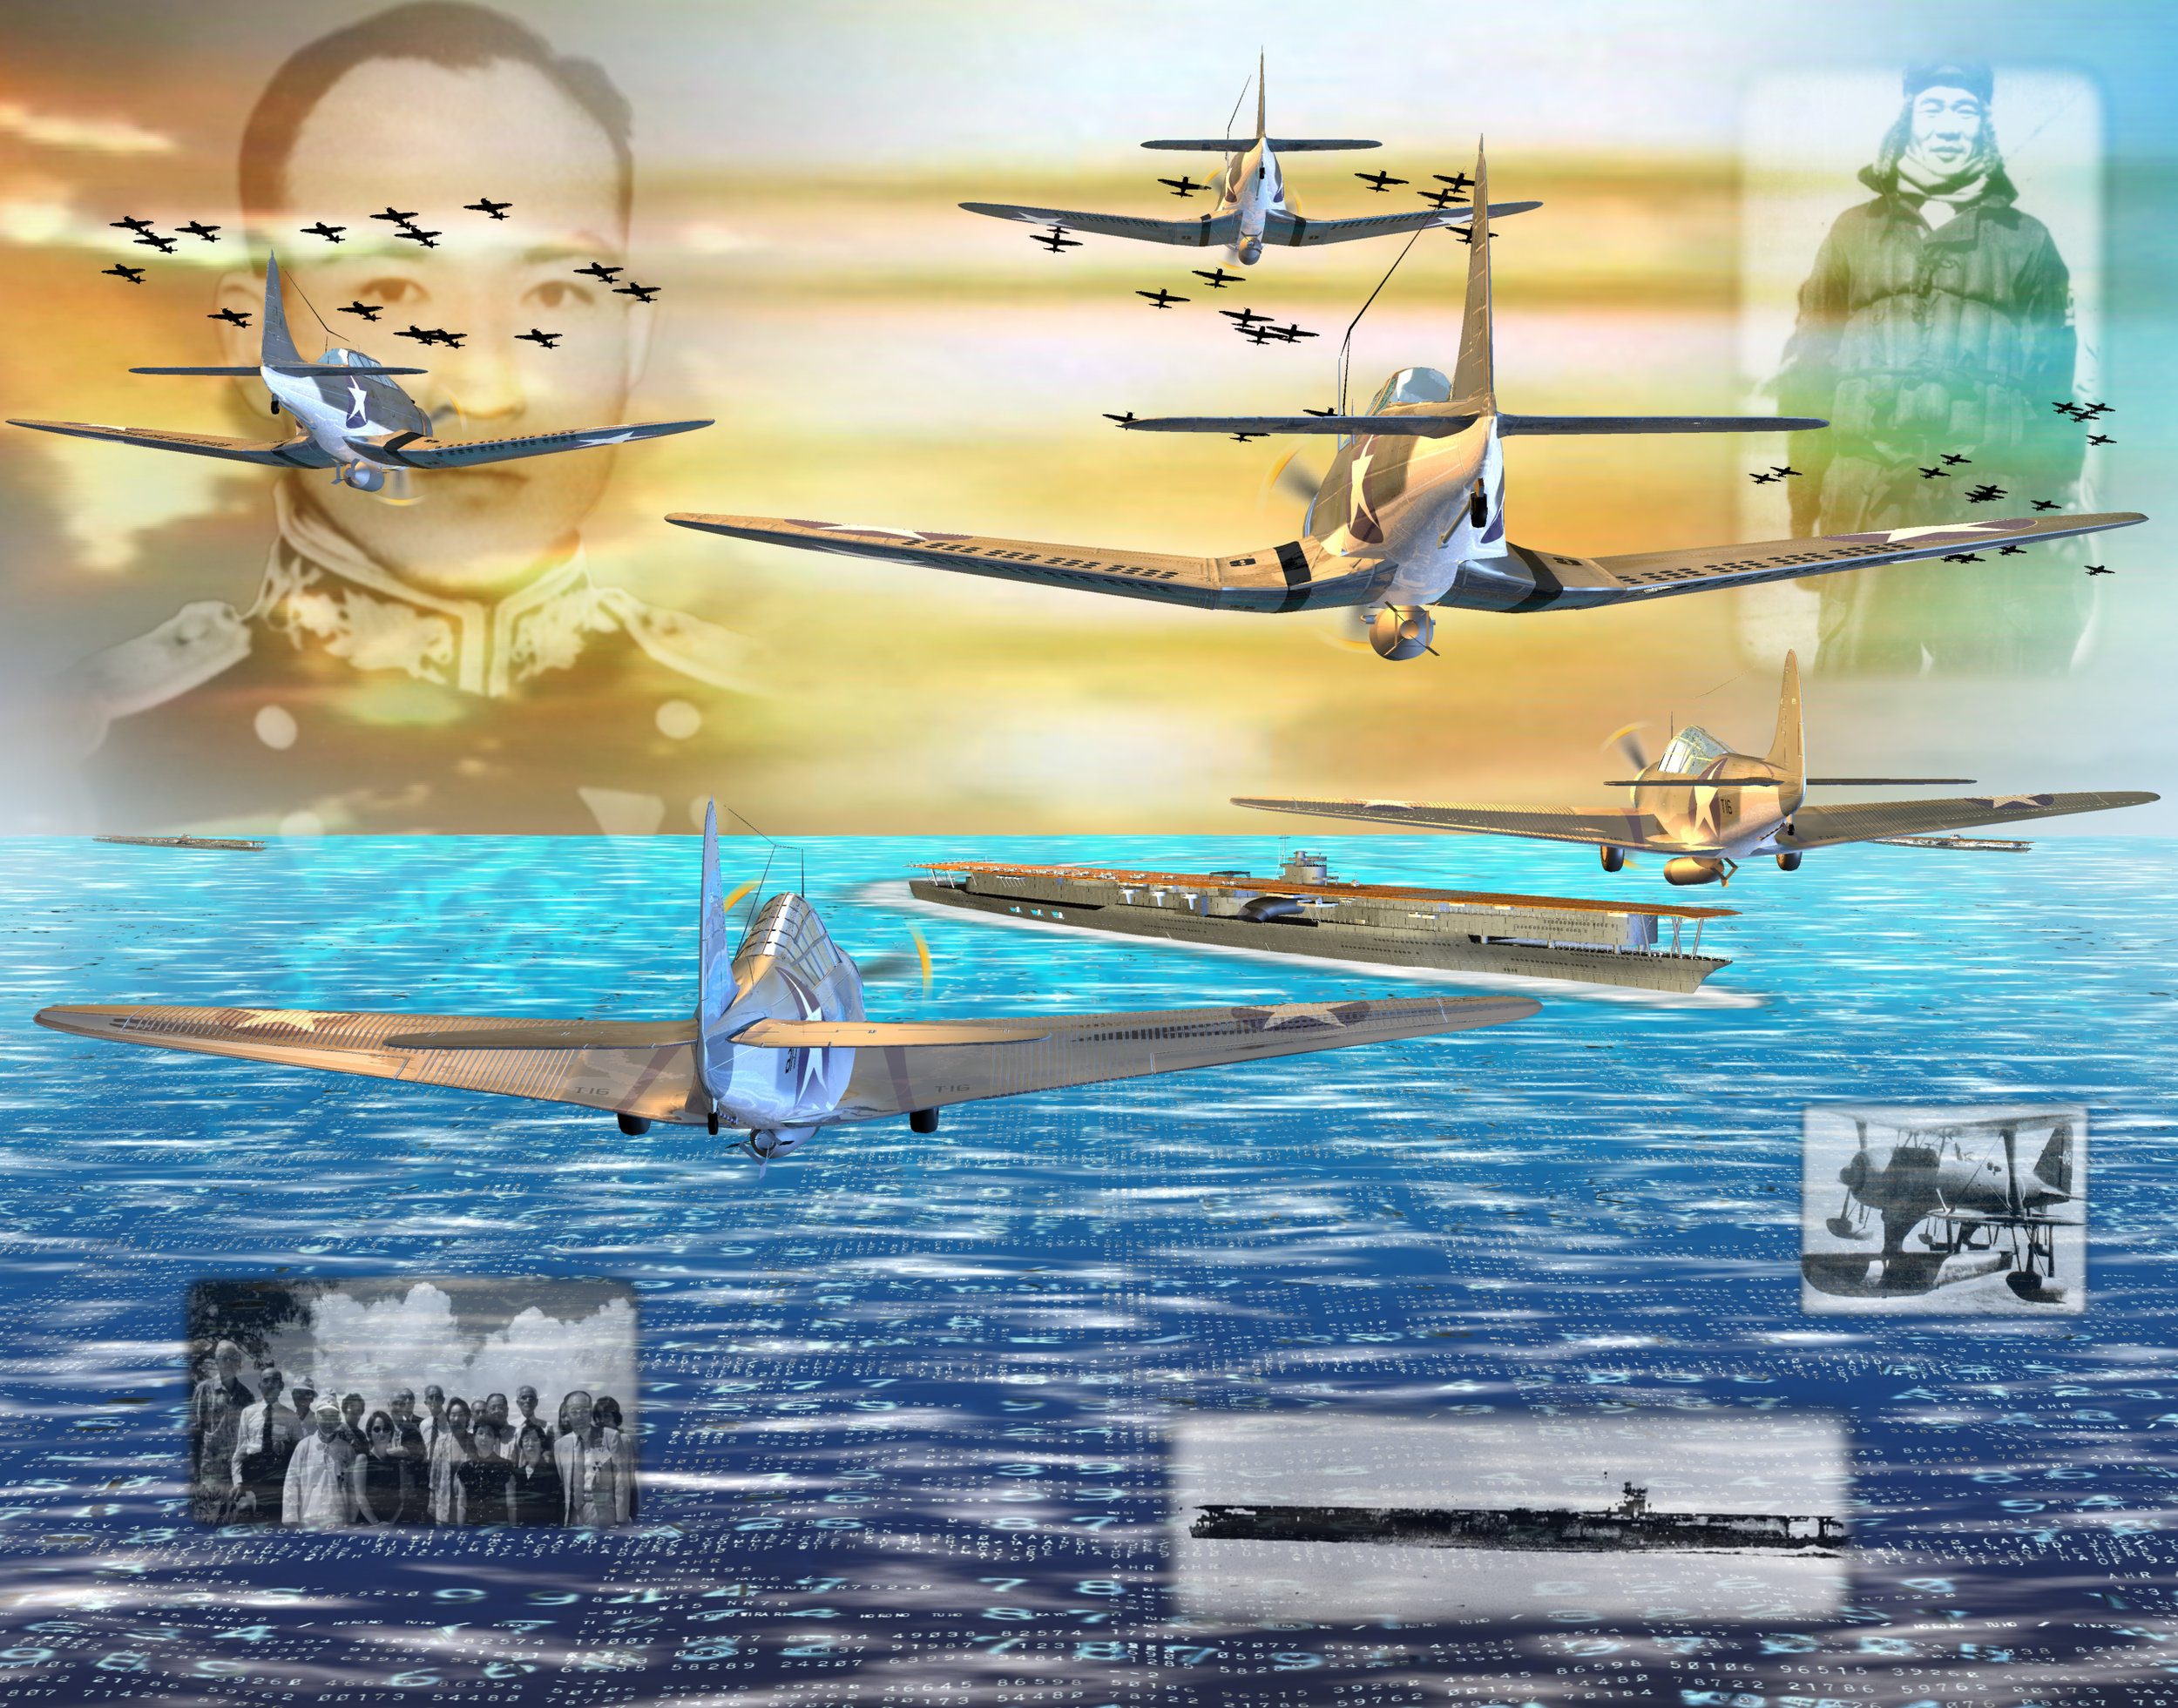 Battle of Midway Memorial detail, Part IV: Japanese and American Veterans Today, 2001